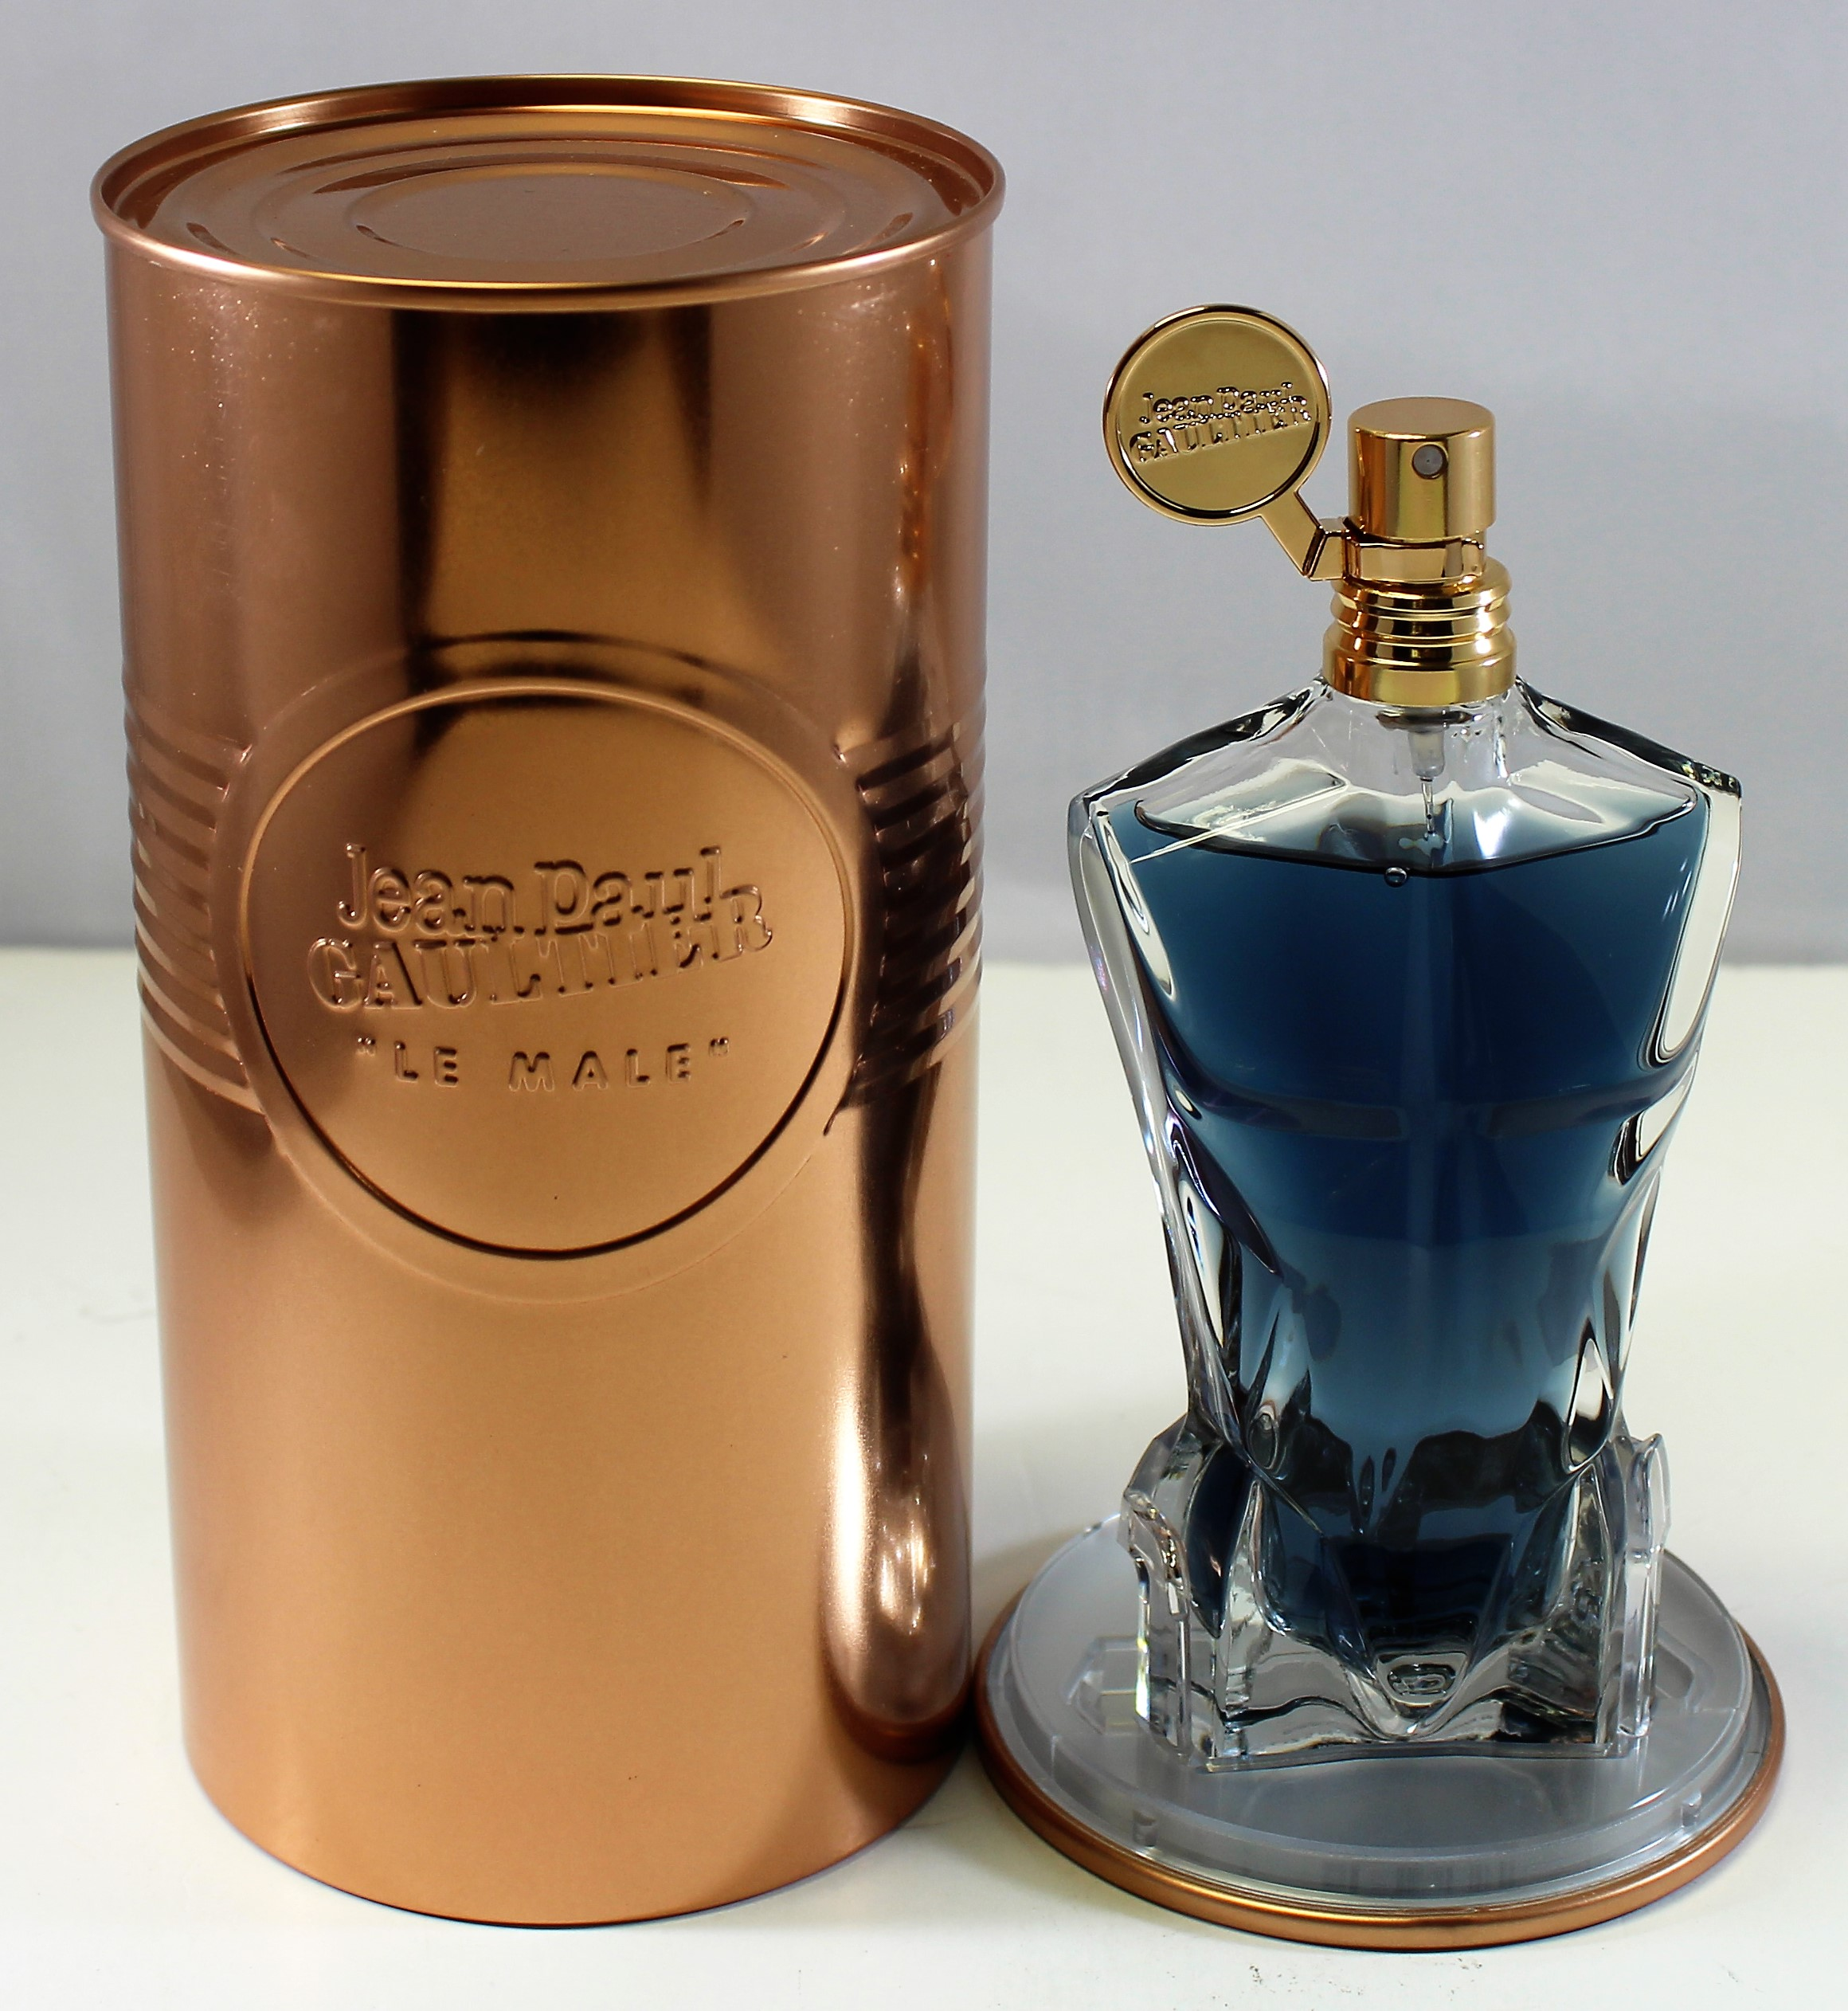 Jean Paul Gaultier Le Male  Essence De Parfum 2.5 Oz Eau de Parfum Intense For Men